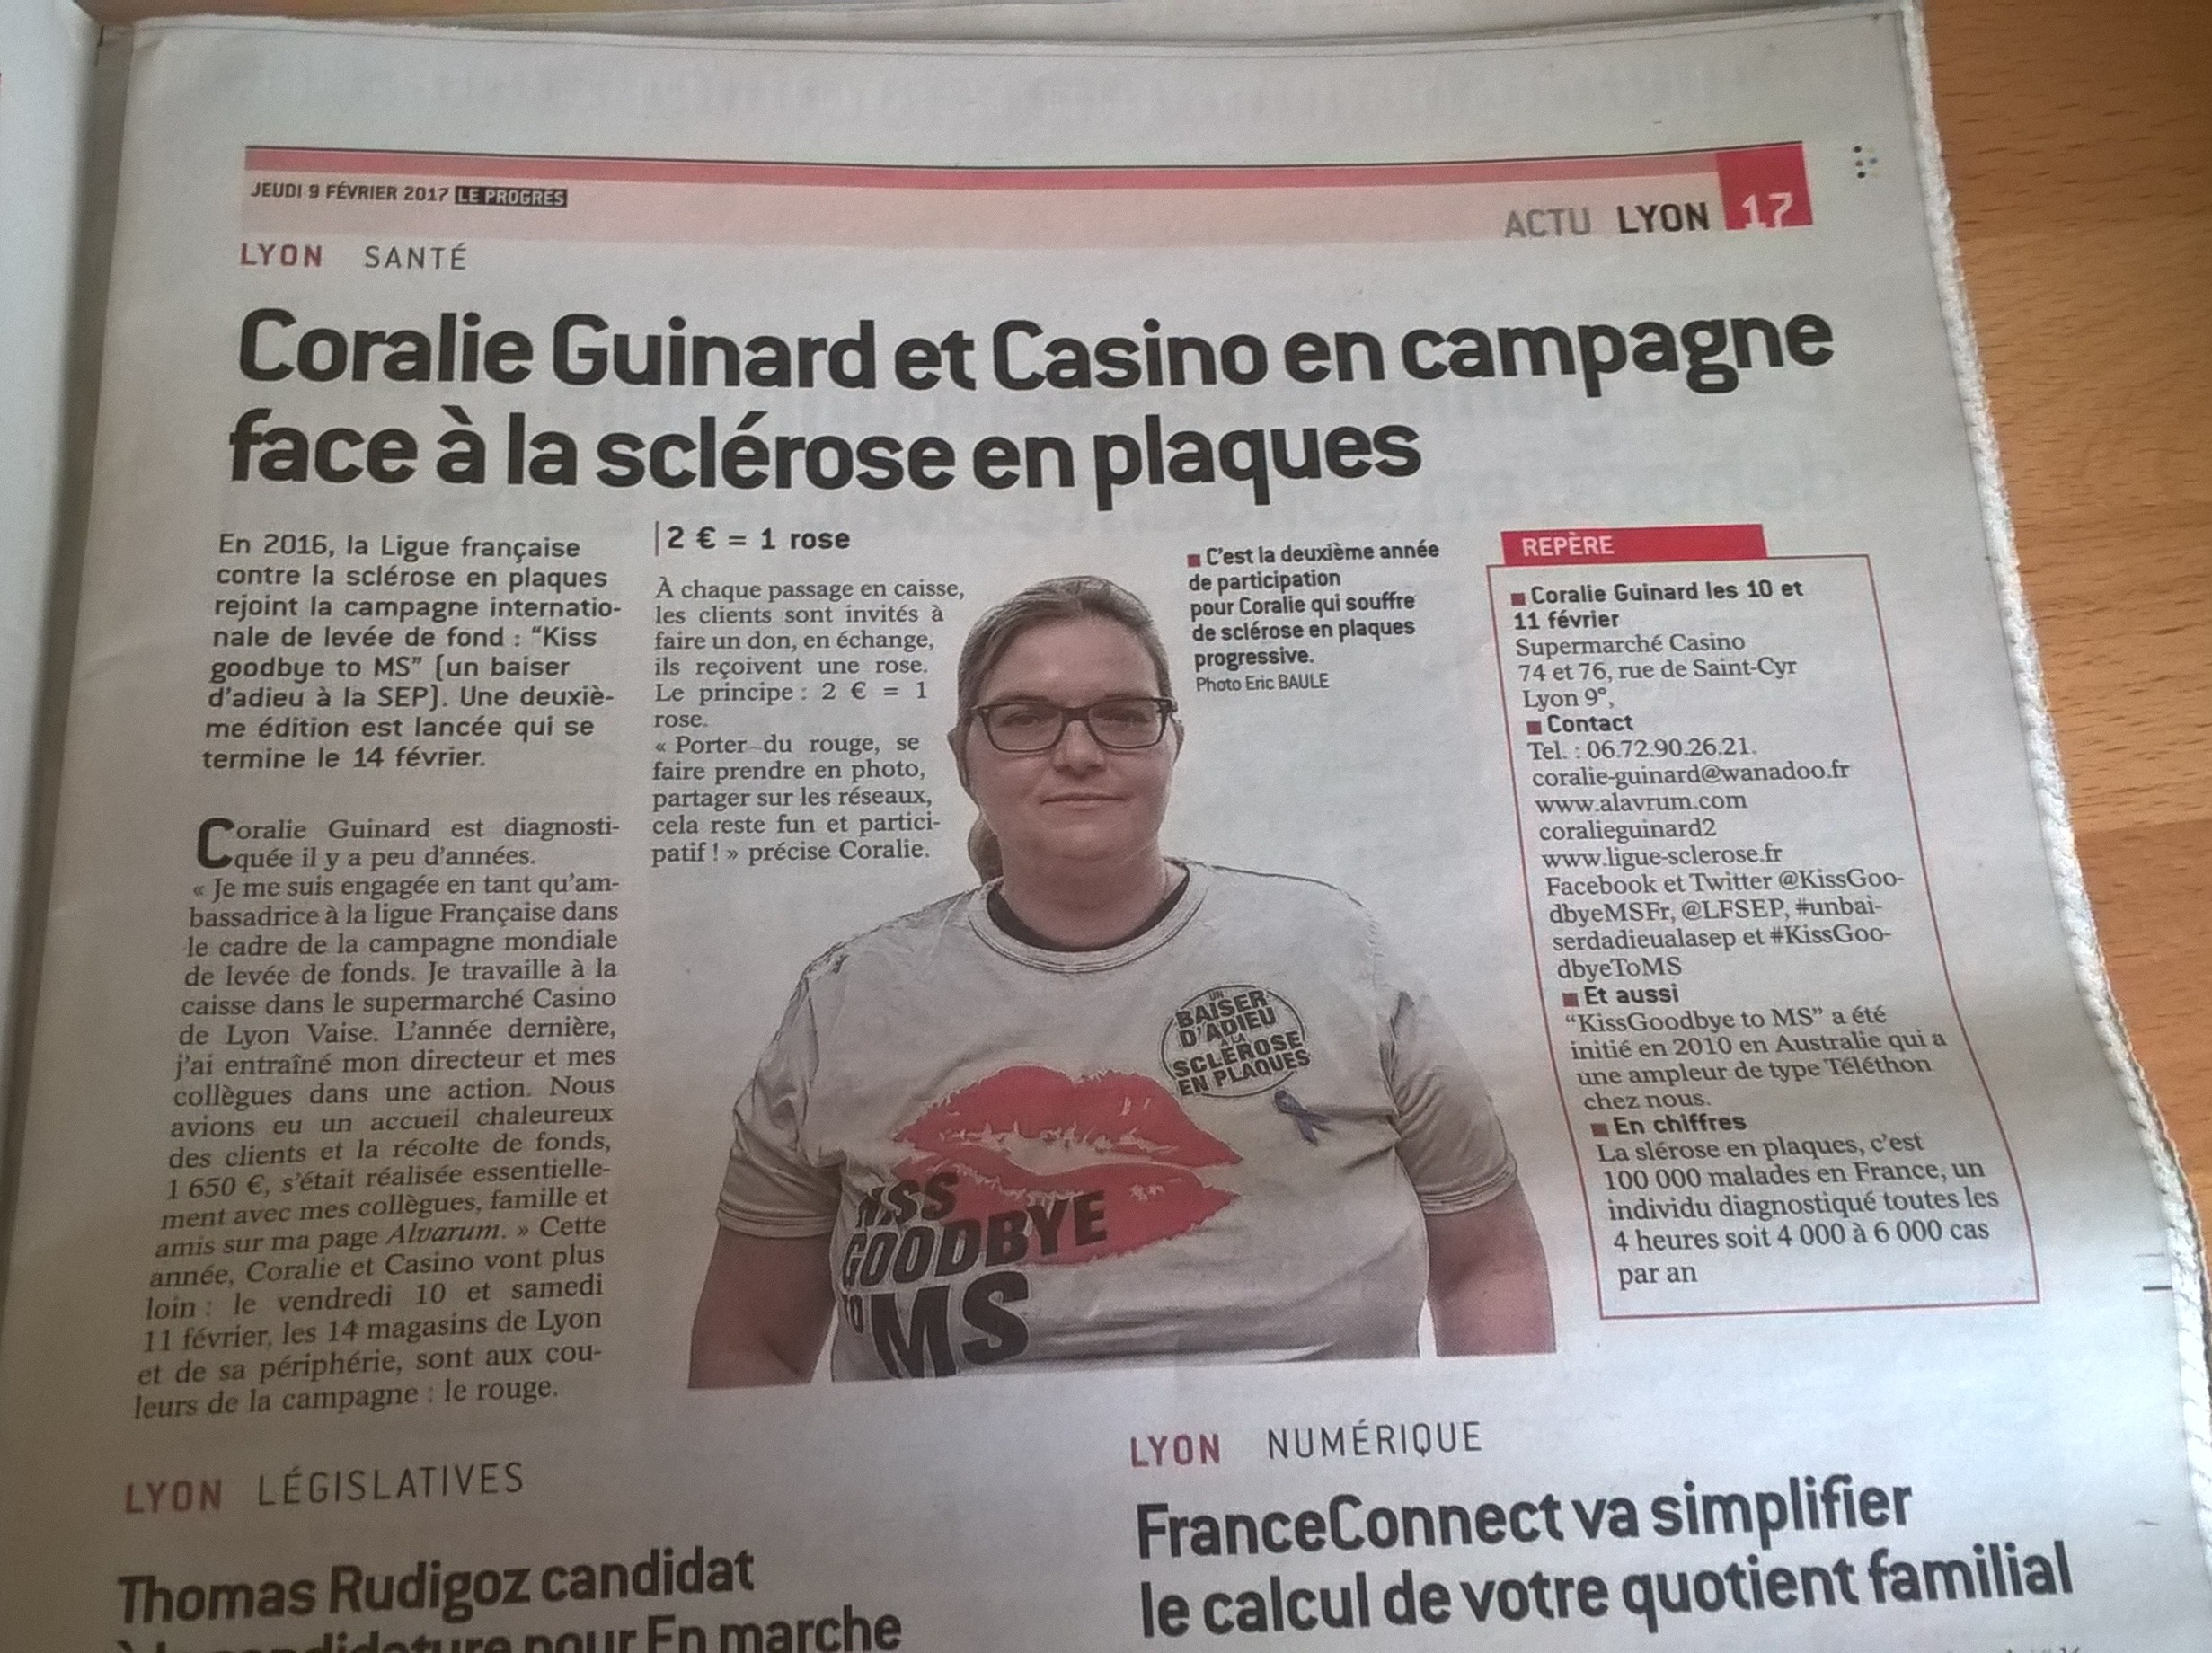 article-le-progres-operation-casino-lyon-9-02-2017